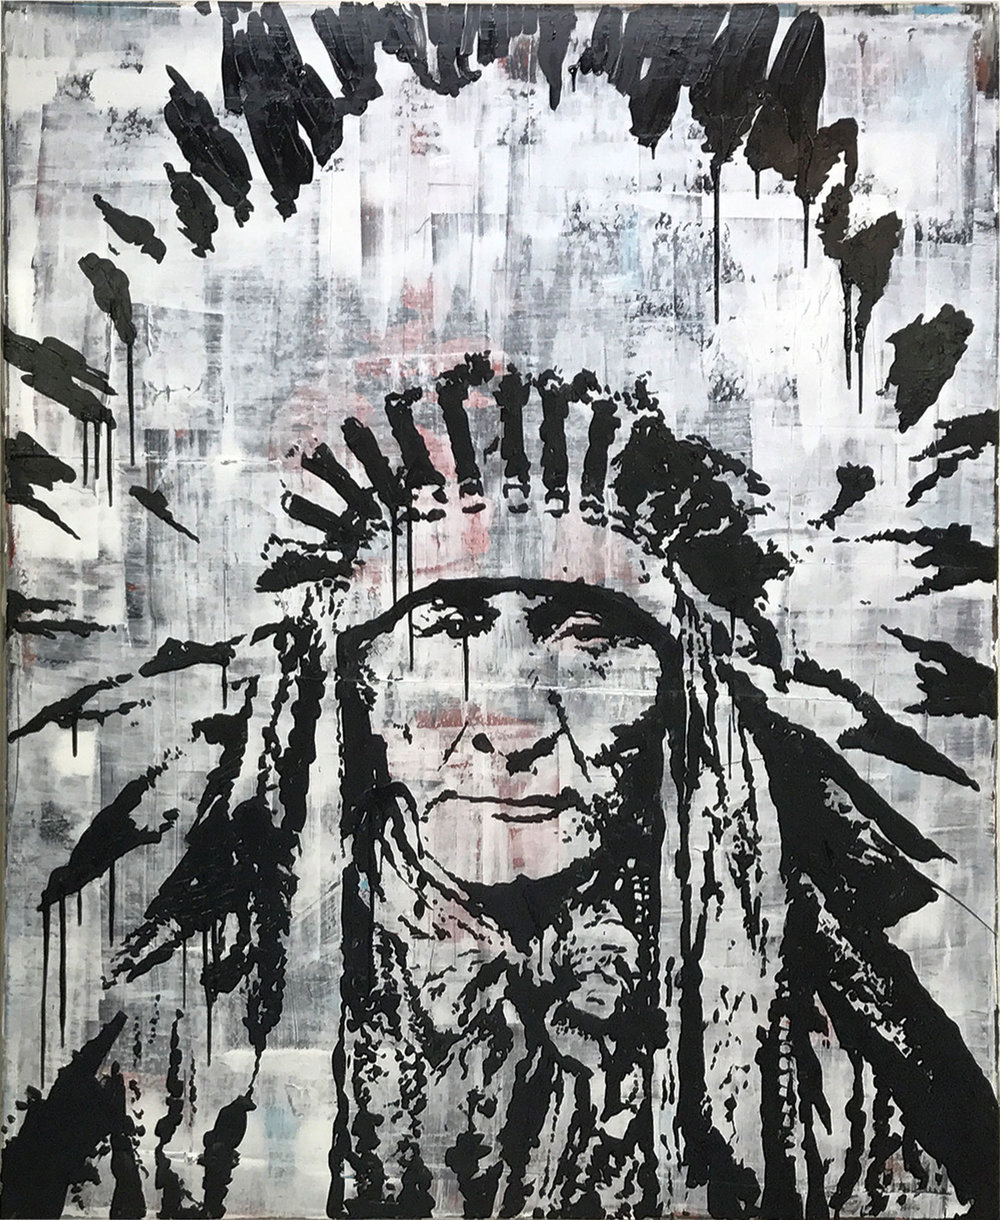 CHIEF - 52 X 60Acrylic, and ink on canvas